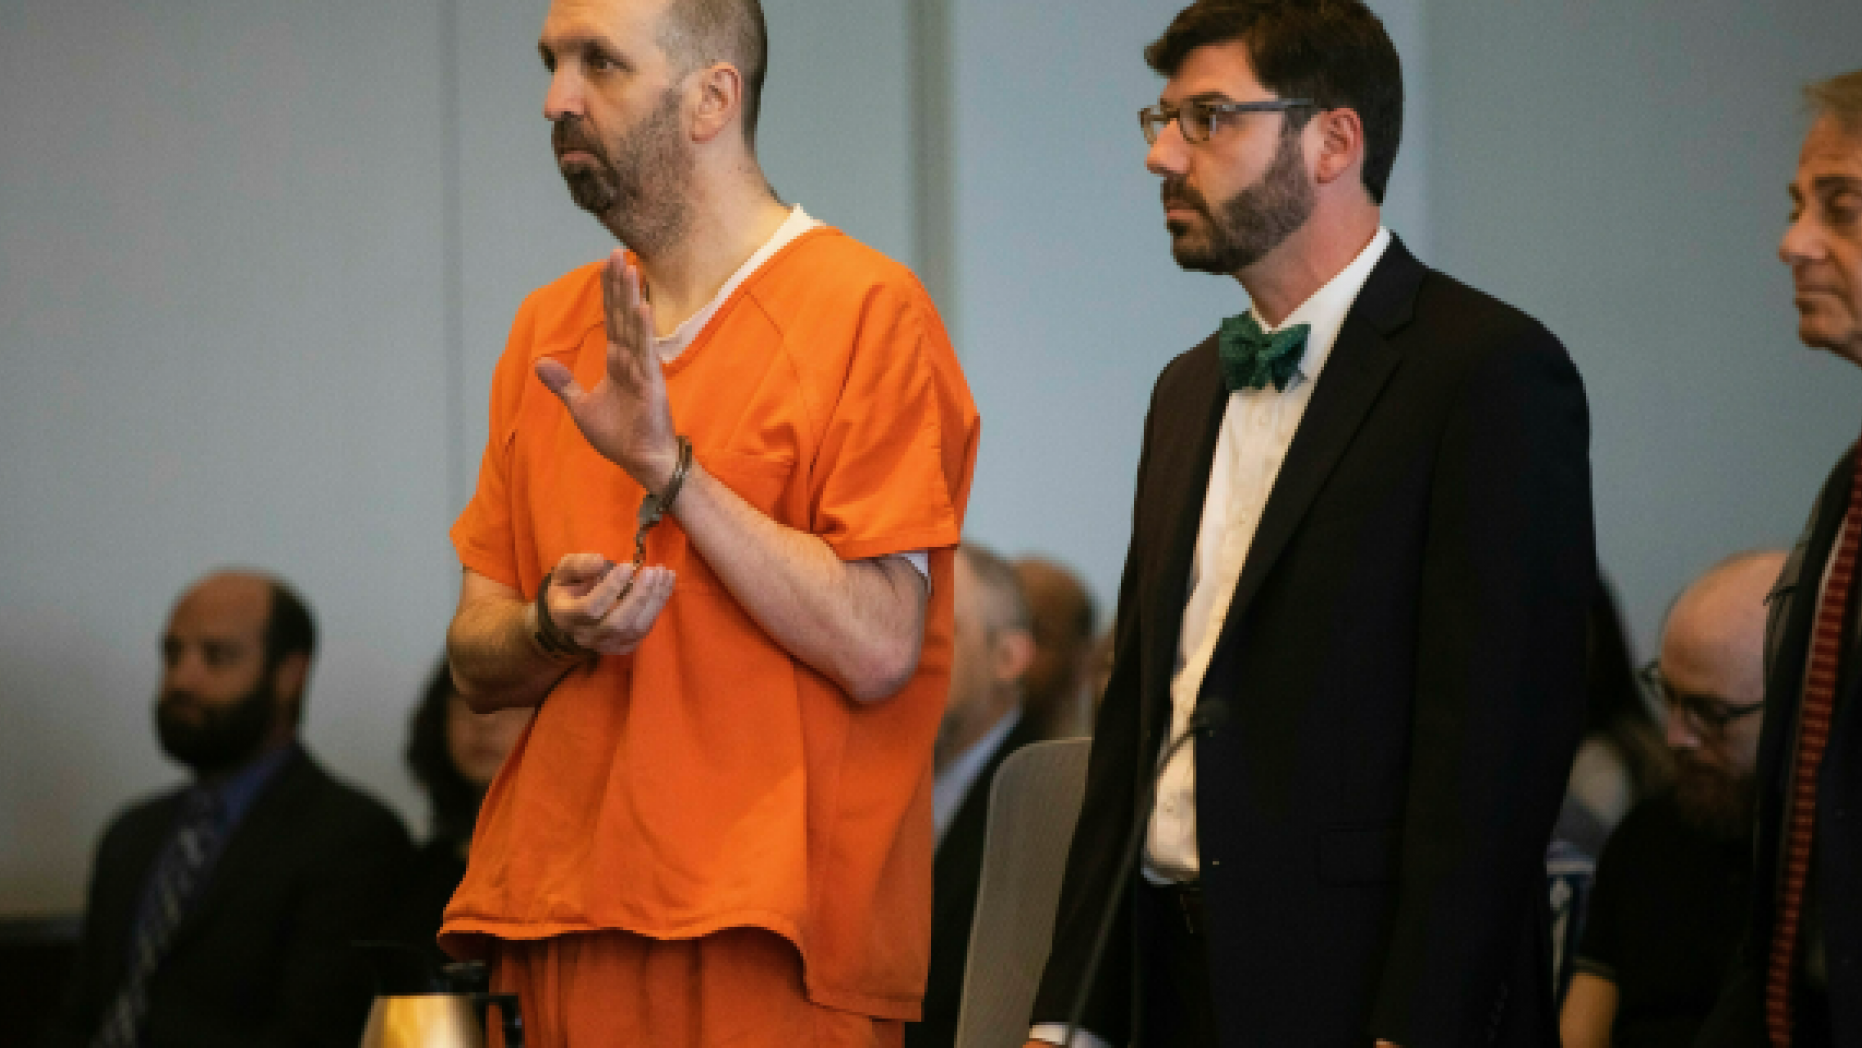 Craig Hicks pleads guilty to first-degree murder in the 2015 murders of three young Muslims at a Chapel Hill apartment Wednesday, June 12, 2019 at the Durham County Courthouse. Hicks will serve a life sentence in prison without the possibility of parole for killing his neighbors at the Finley Forest Condominiums: Deah Barakat, 23, his wife Yusor Abu-Salha, 21, and her sister Razan Abu-Salha, 19.  (Travis Long/The News & Observer via AP)